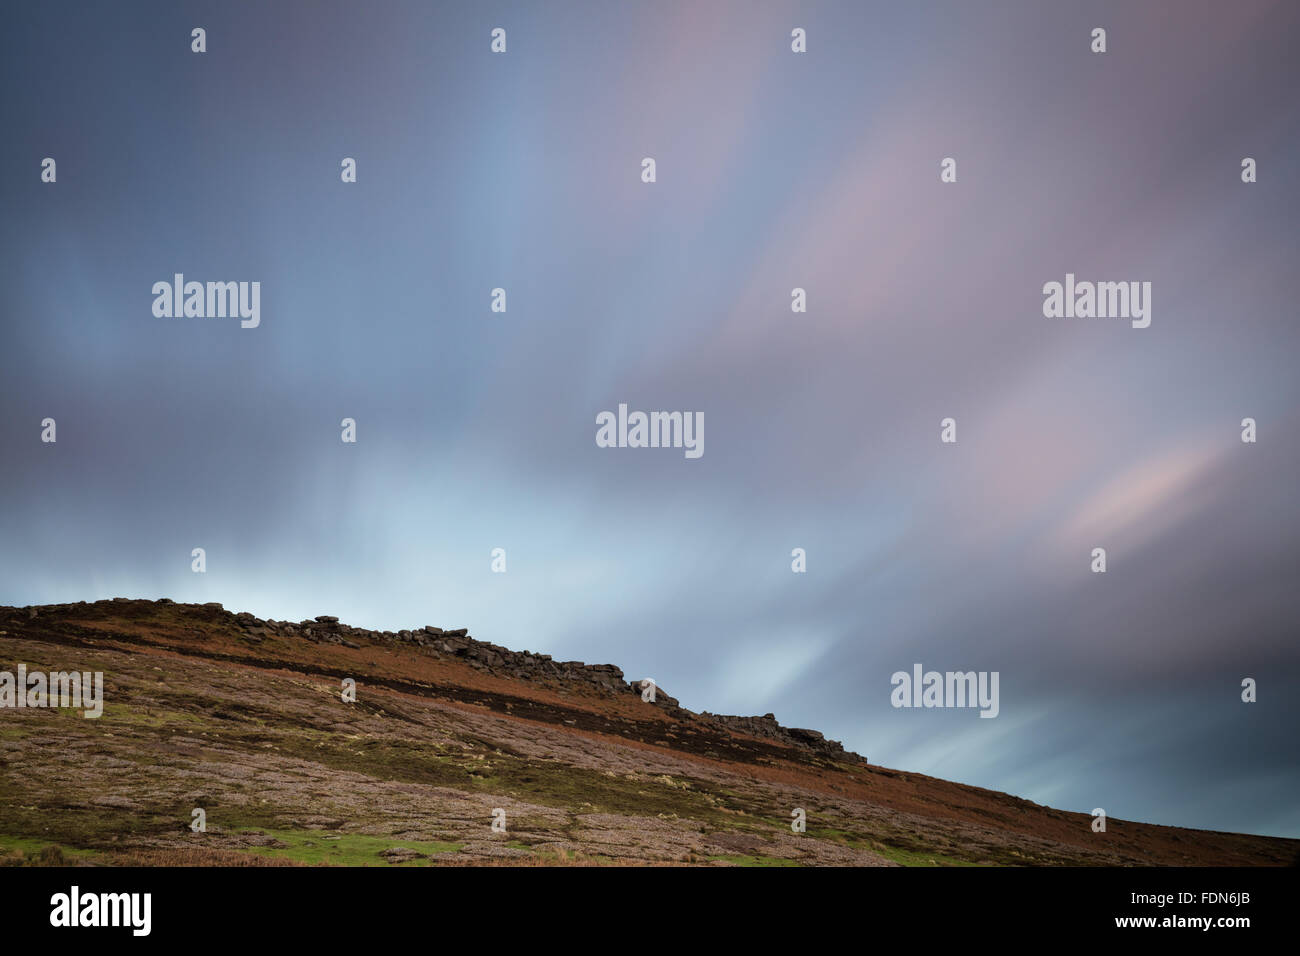 Sheffield, UK. 1st February, 2016. UK Weather: As Storm Henry's high winds hit the UK, a long exposure captures Stock Photo